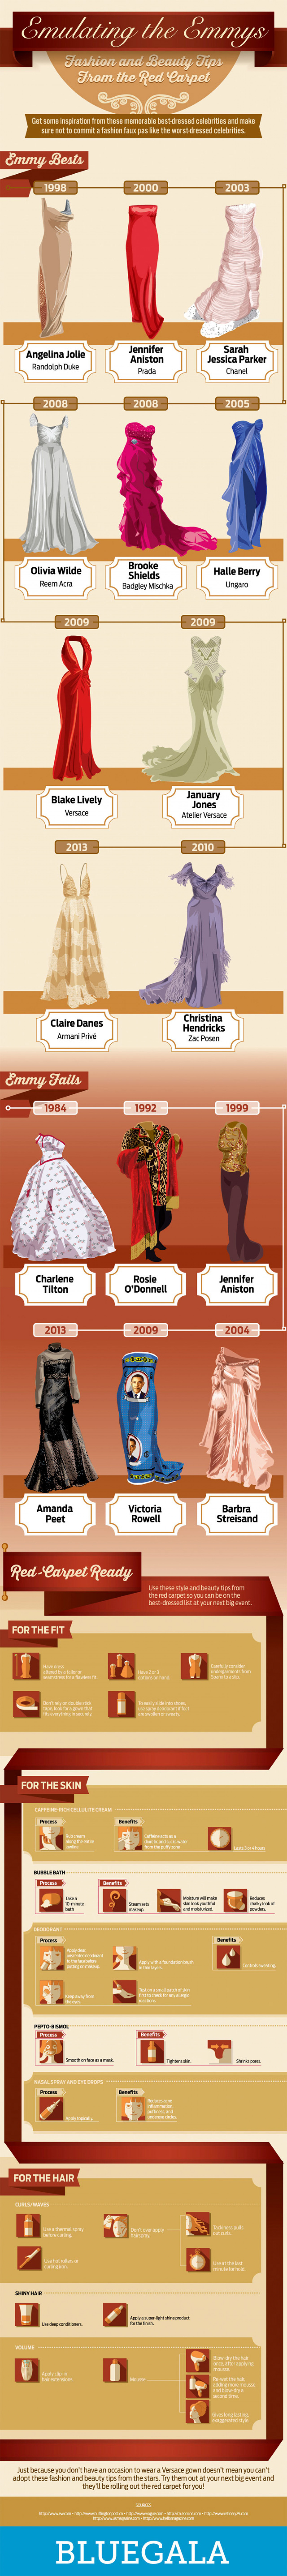 Emulating The Emmys: Red Carpet Fashion And Beauty Tips Infographic